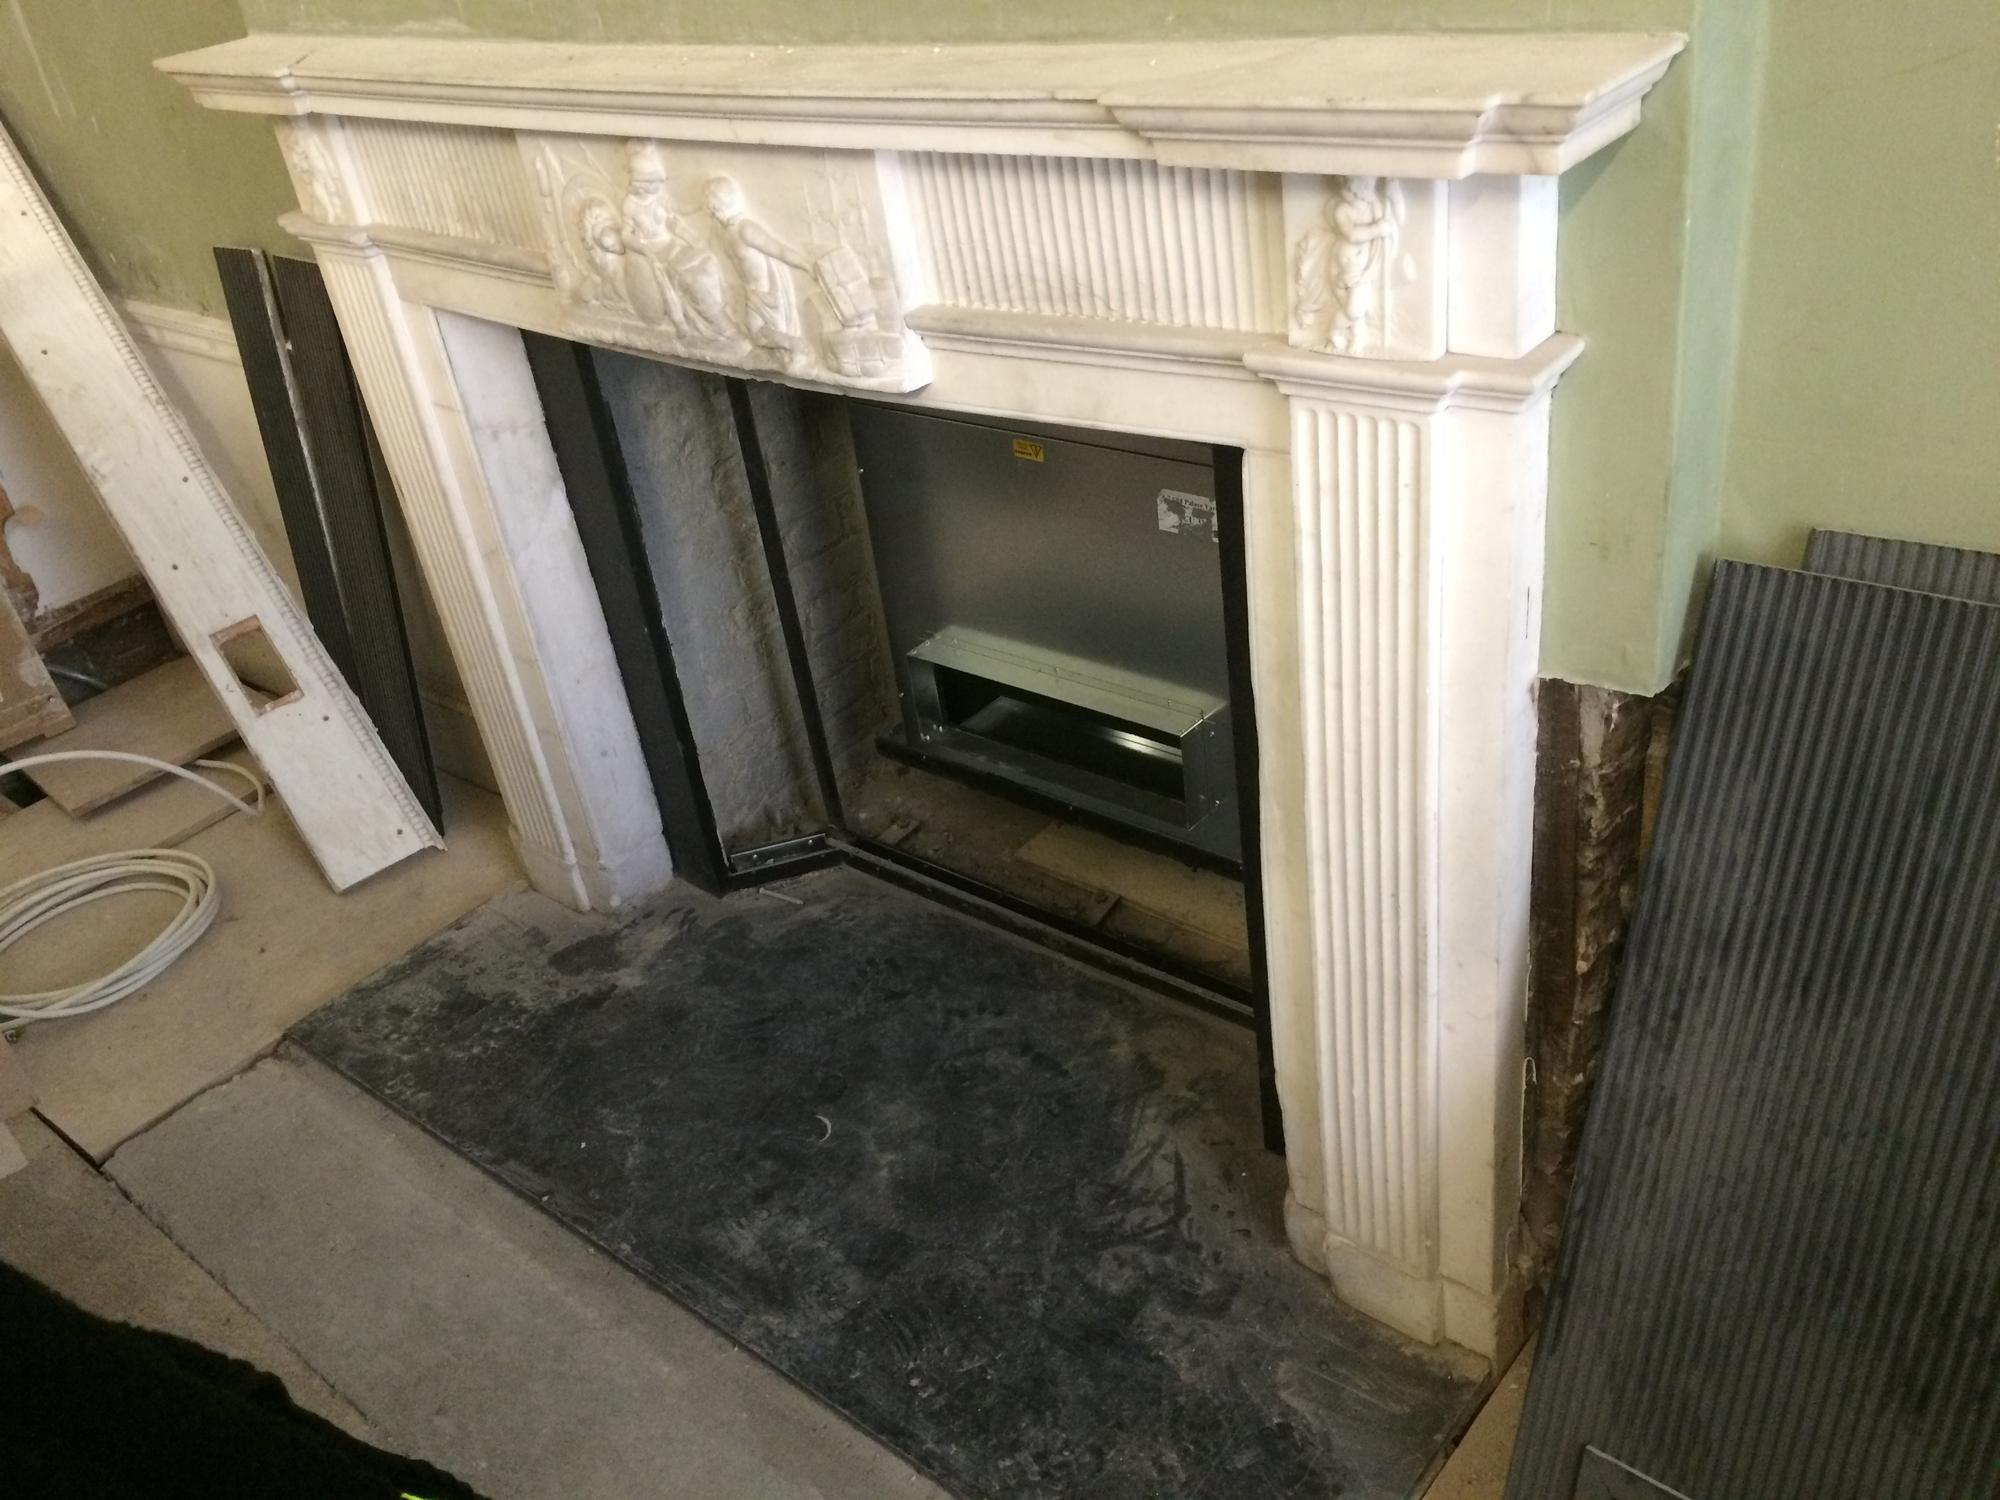 bespoke repairs ltd uk stone u0026 glass repair traditional marble